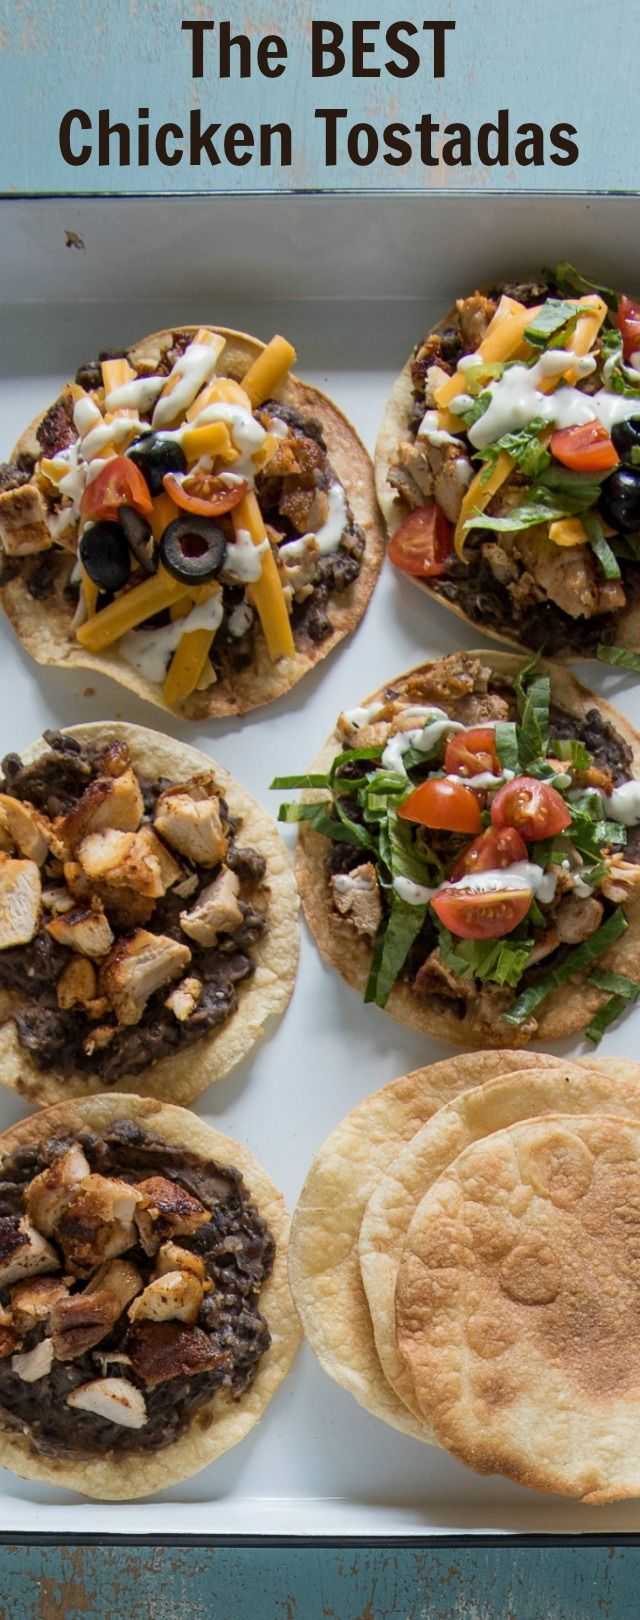 Easy chicken dinner alert! The Best Chicken Tostada Recipe takes 30 minutes to make, includes simple baked tostada shells, and the whole family will love it. Take Taco Tuesday to the next level with this delicious recipe.